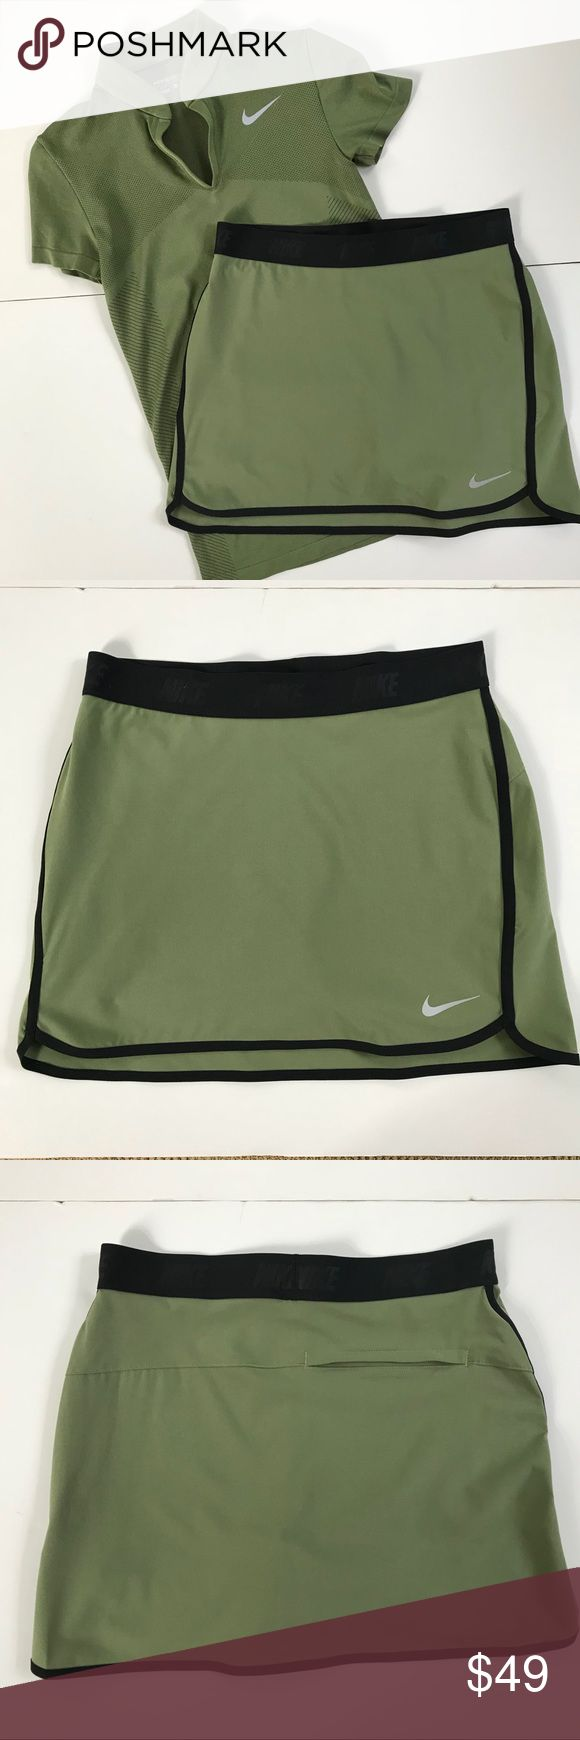 "Nike Women's Fringe Flip Golf Skort Palm Green XS Combining 4-way stretch woven fabric, Dri-FIT technology and an elastic waistband, the Fringe Flip Skort delivers moisture-wicking comfort with improved mobility and fit.  FEATURES: 4-way stretch Pull-on design Elastic waistband  One back welt pocket Attached inner knit short Hem vents  Drop-tail hem  Dri-FIT fabric Outseam: 14.5"". 85% Polyester / 15% Spandex Style: 831307 - current style in stores…"